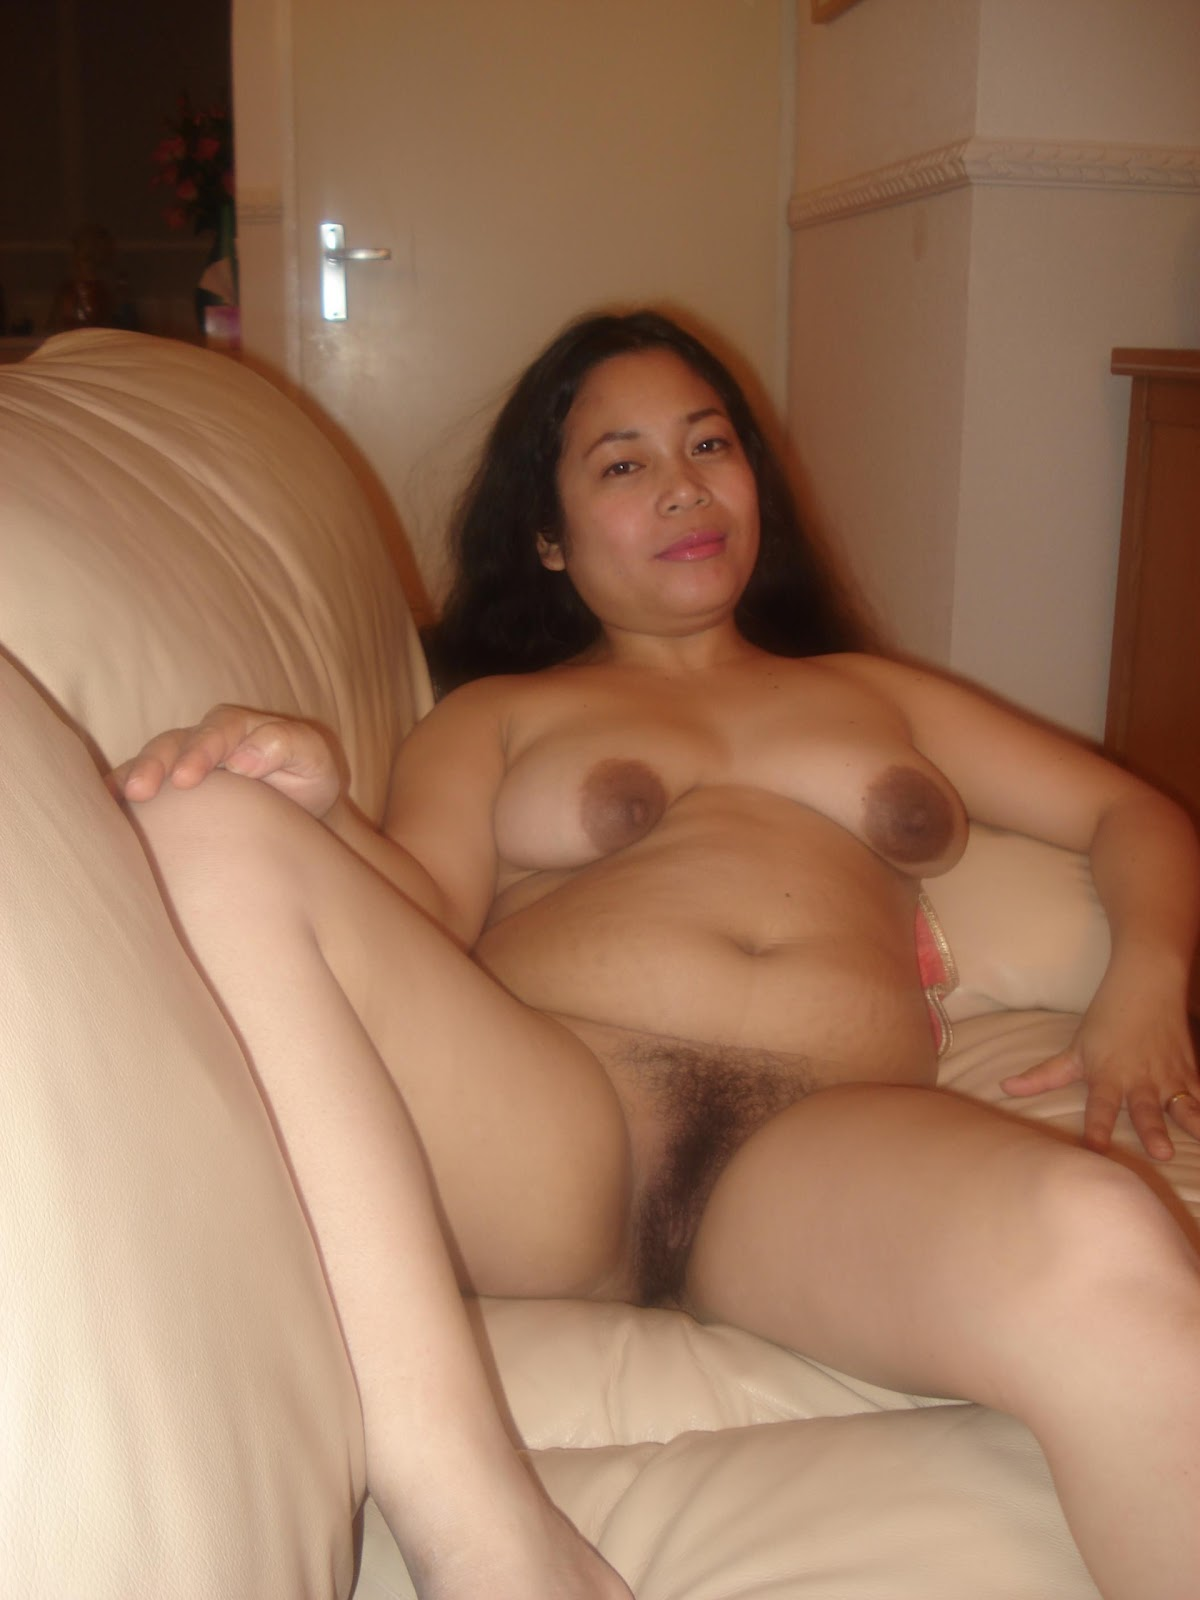 Filipina Pregnant mom's dirty naked self photos leaked ...: http://sexmenu.org/filipina-pregnant-moms-dirty-naked-self-photos-leaked-6pix/